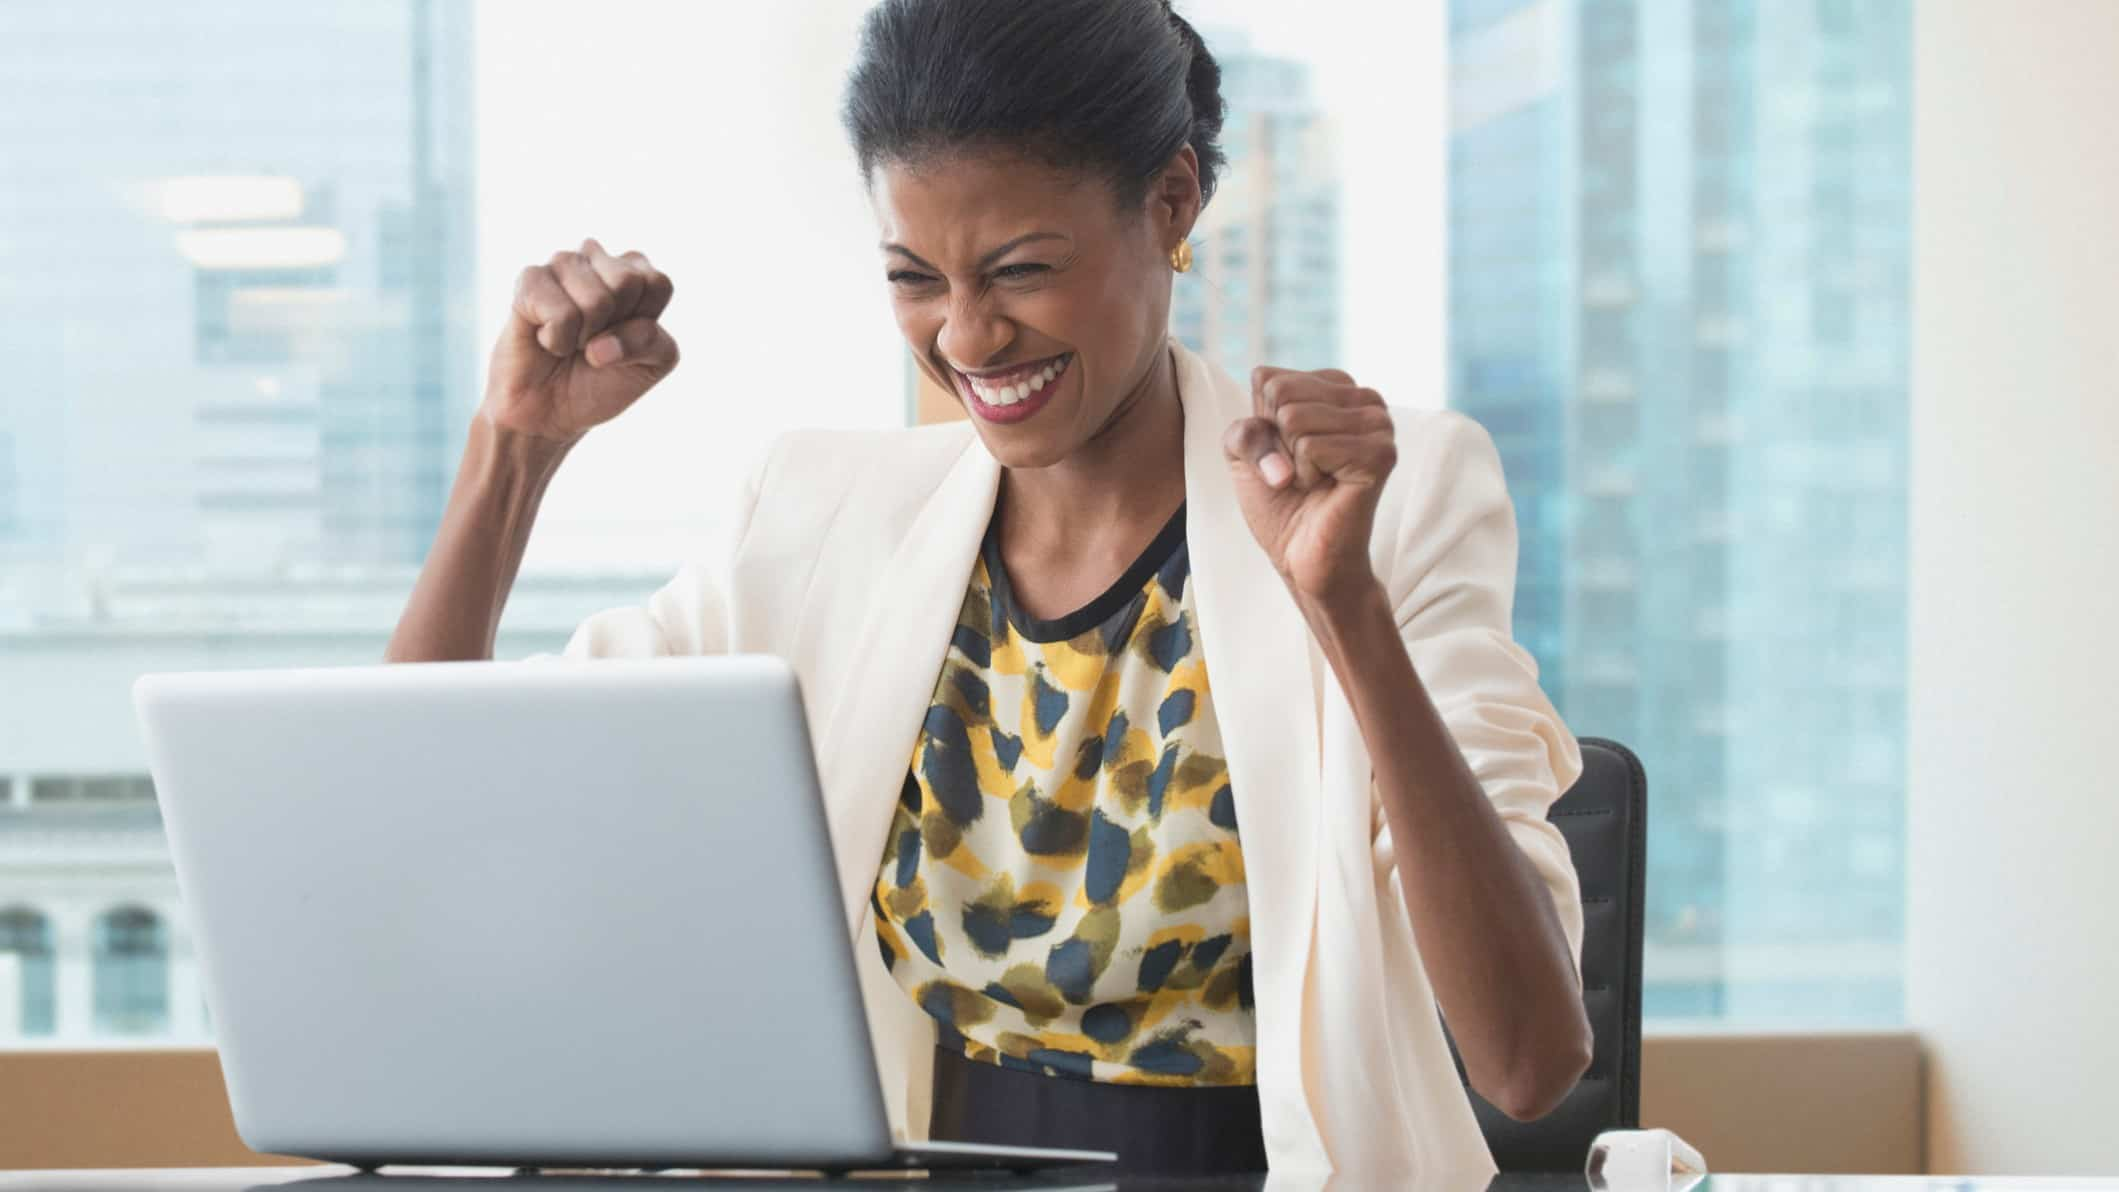 A happy woman at her laptop punches the air, indicating a rising share price